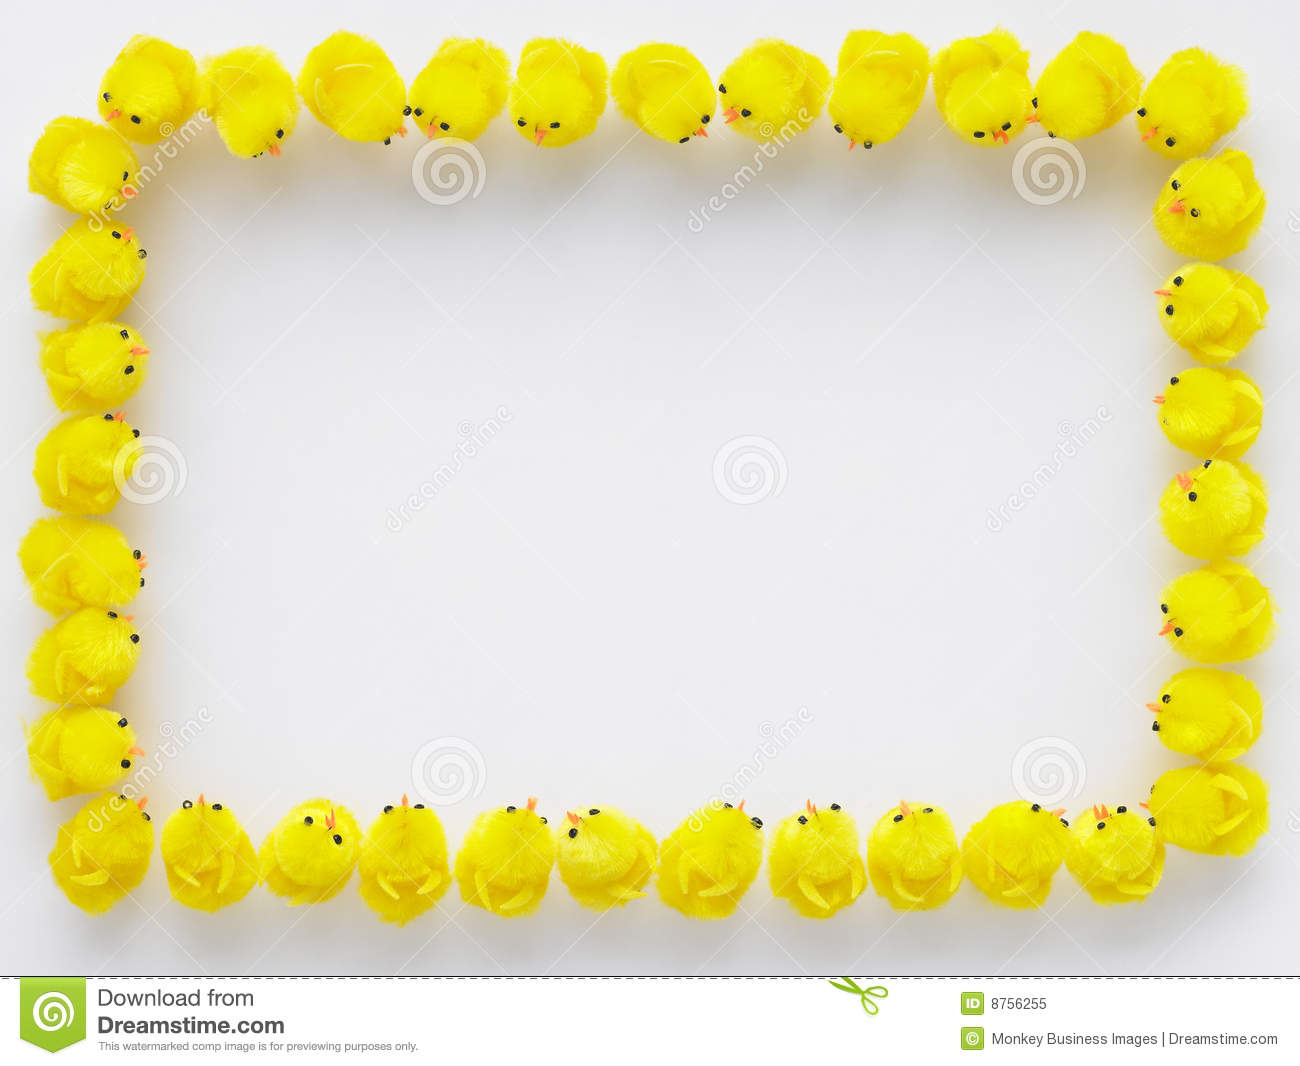 Border Made Of Easter Chicks Royalty Free Stock Photo   Image  8756255